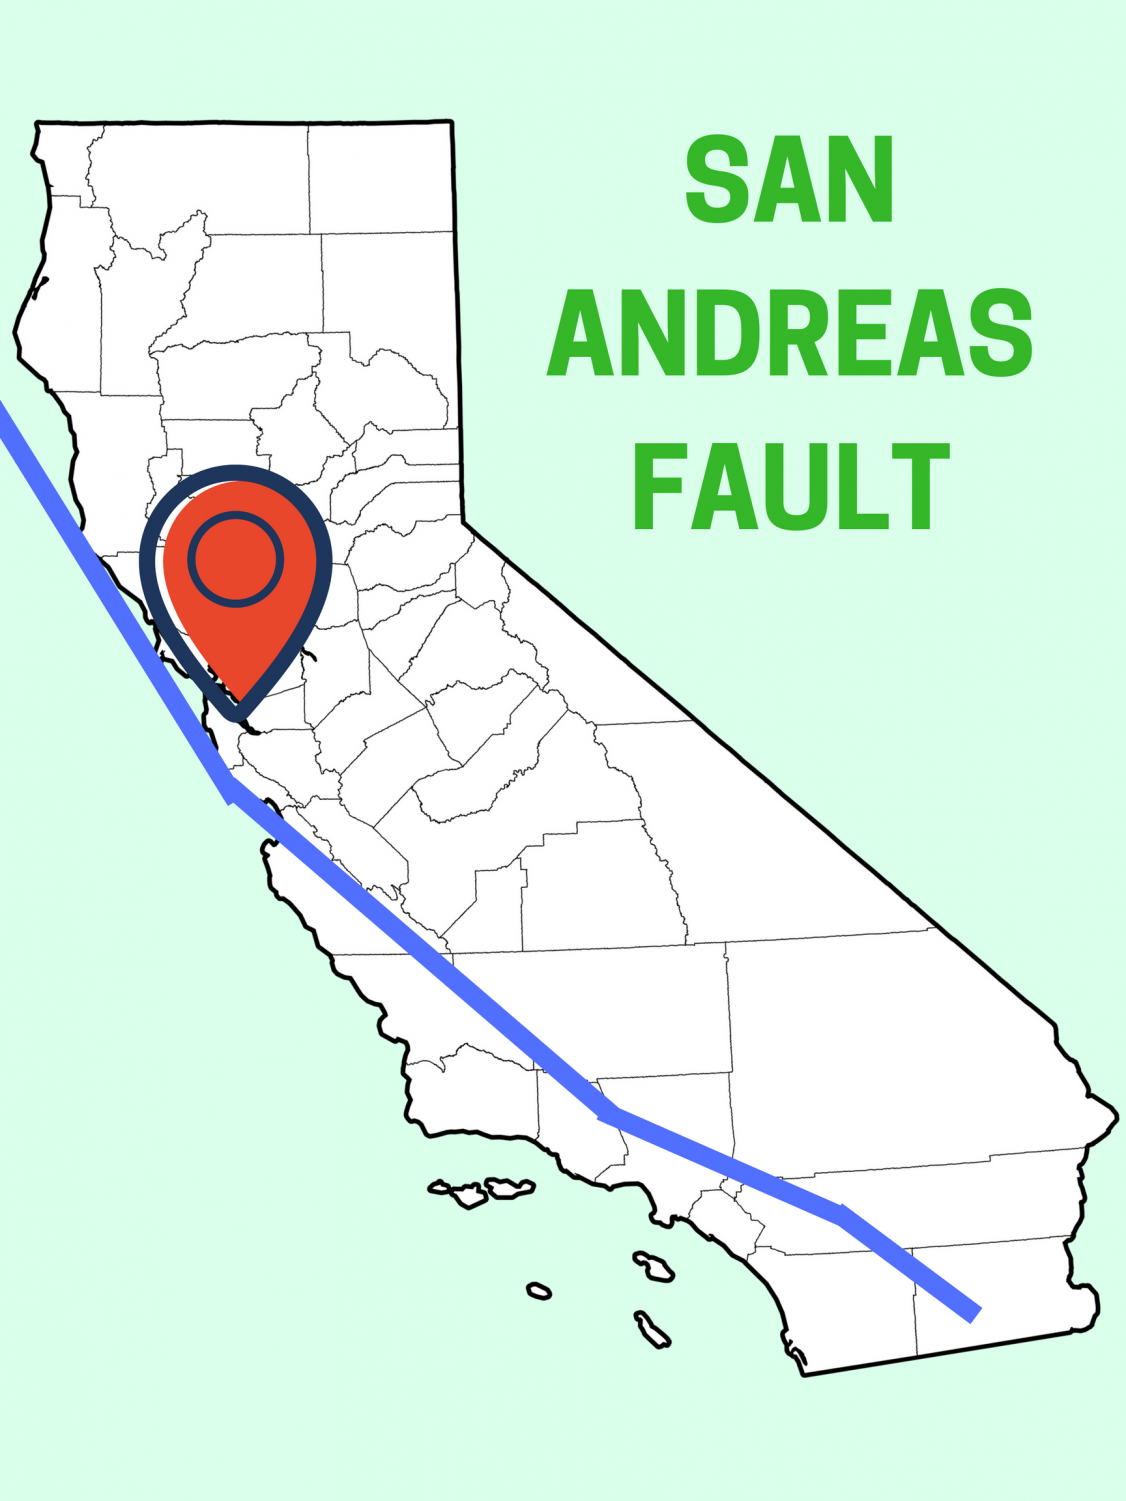 Earthquake clipart san andreas fault. Is a massive coming